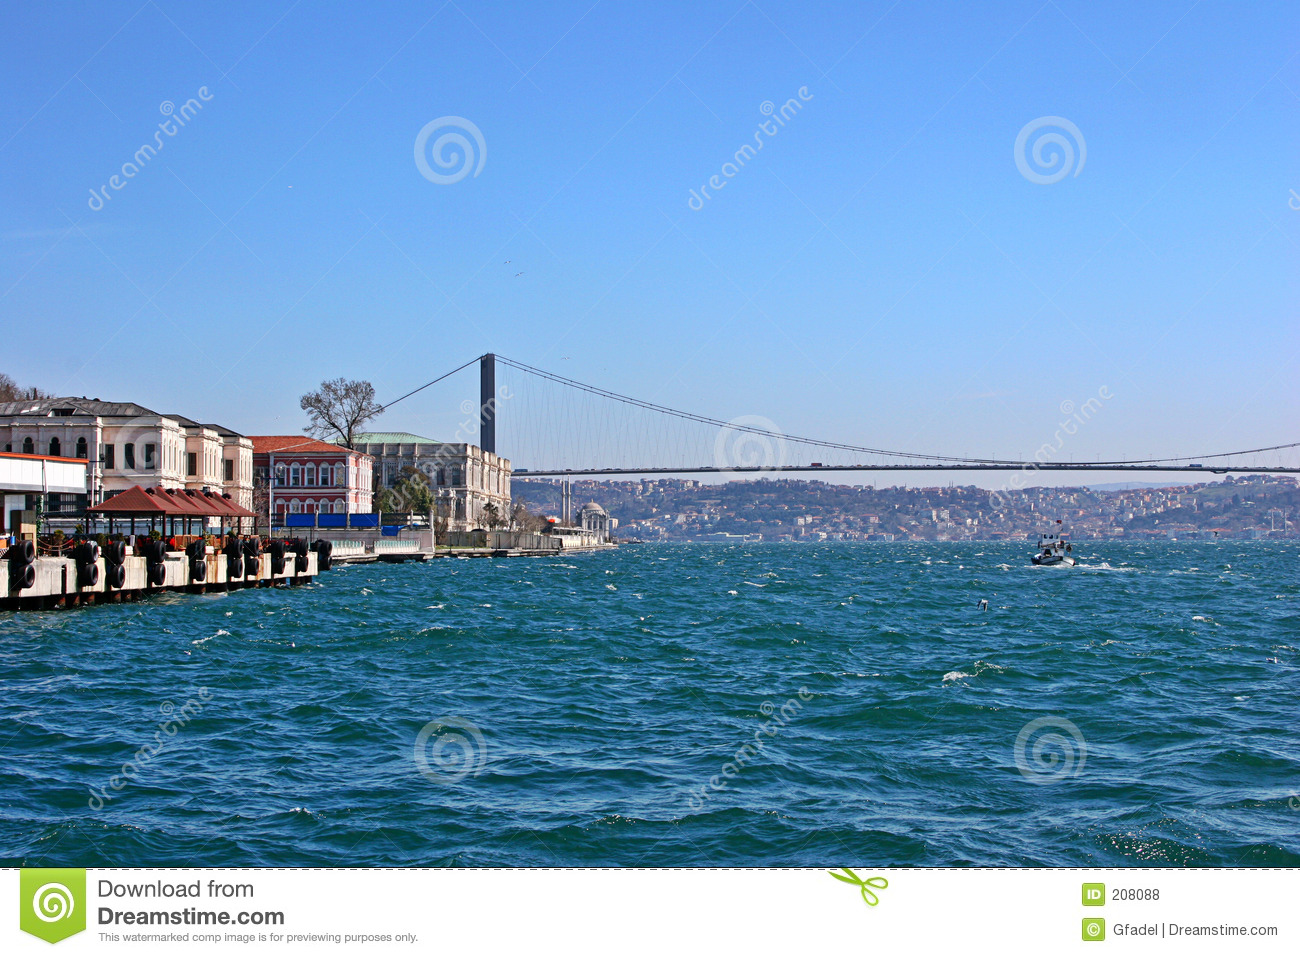 Most Istanbul bosfor